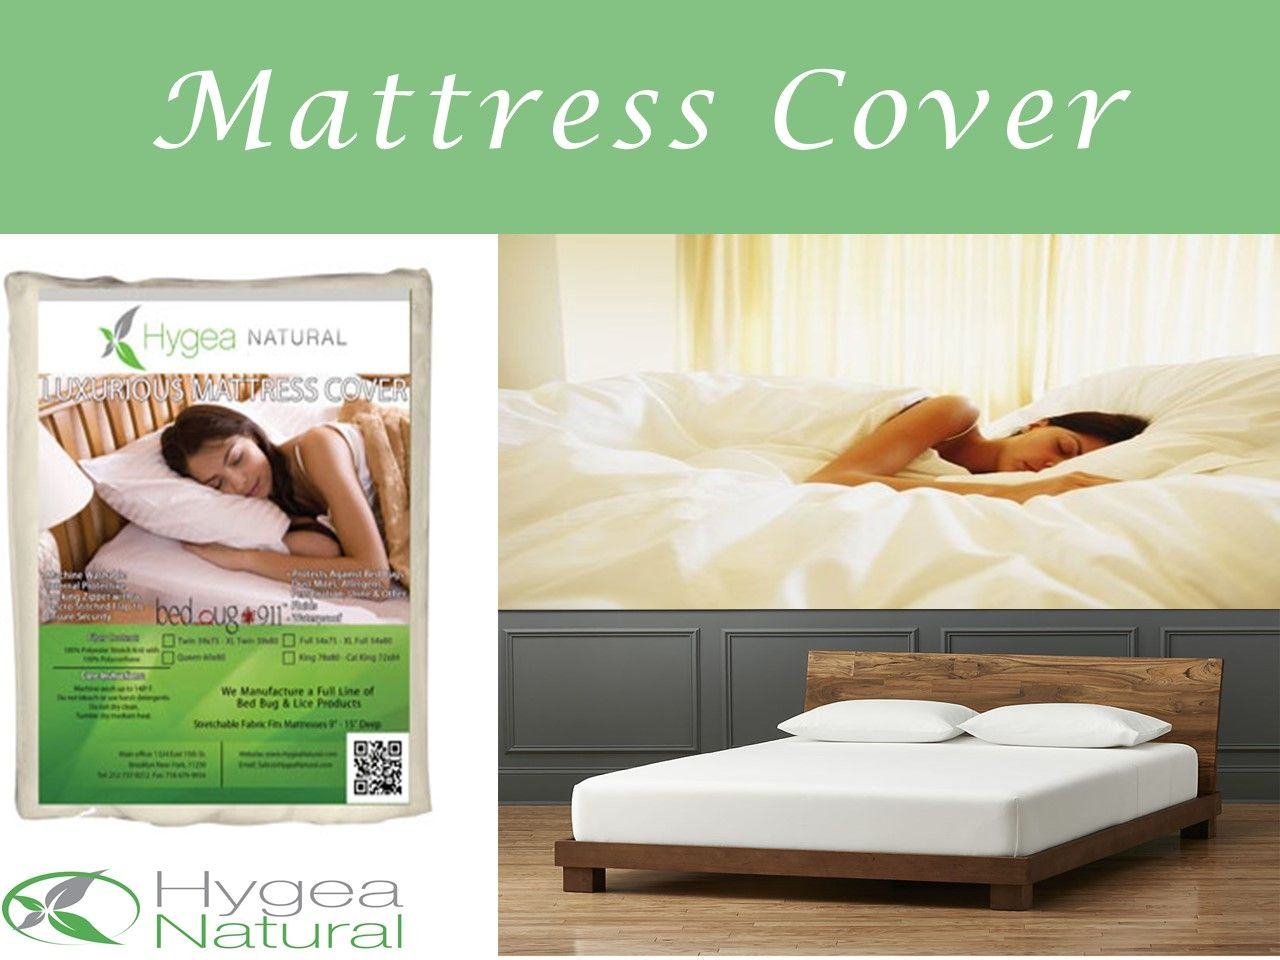 mattress encasement: our bedbug-proof mattress covers prevent bed